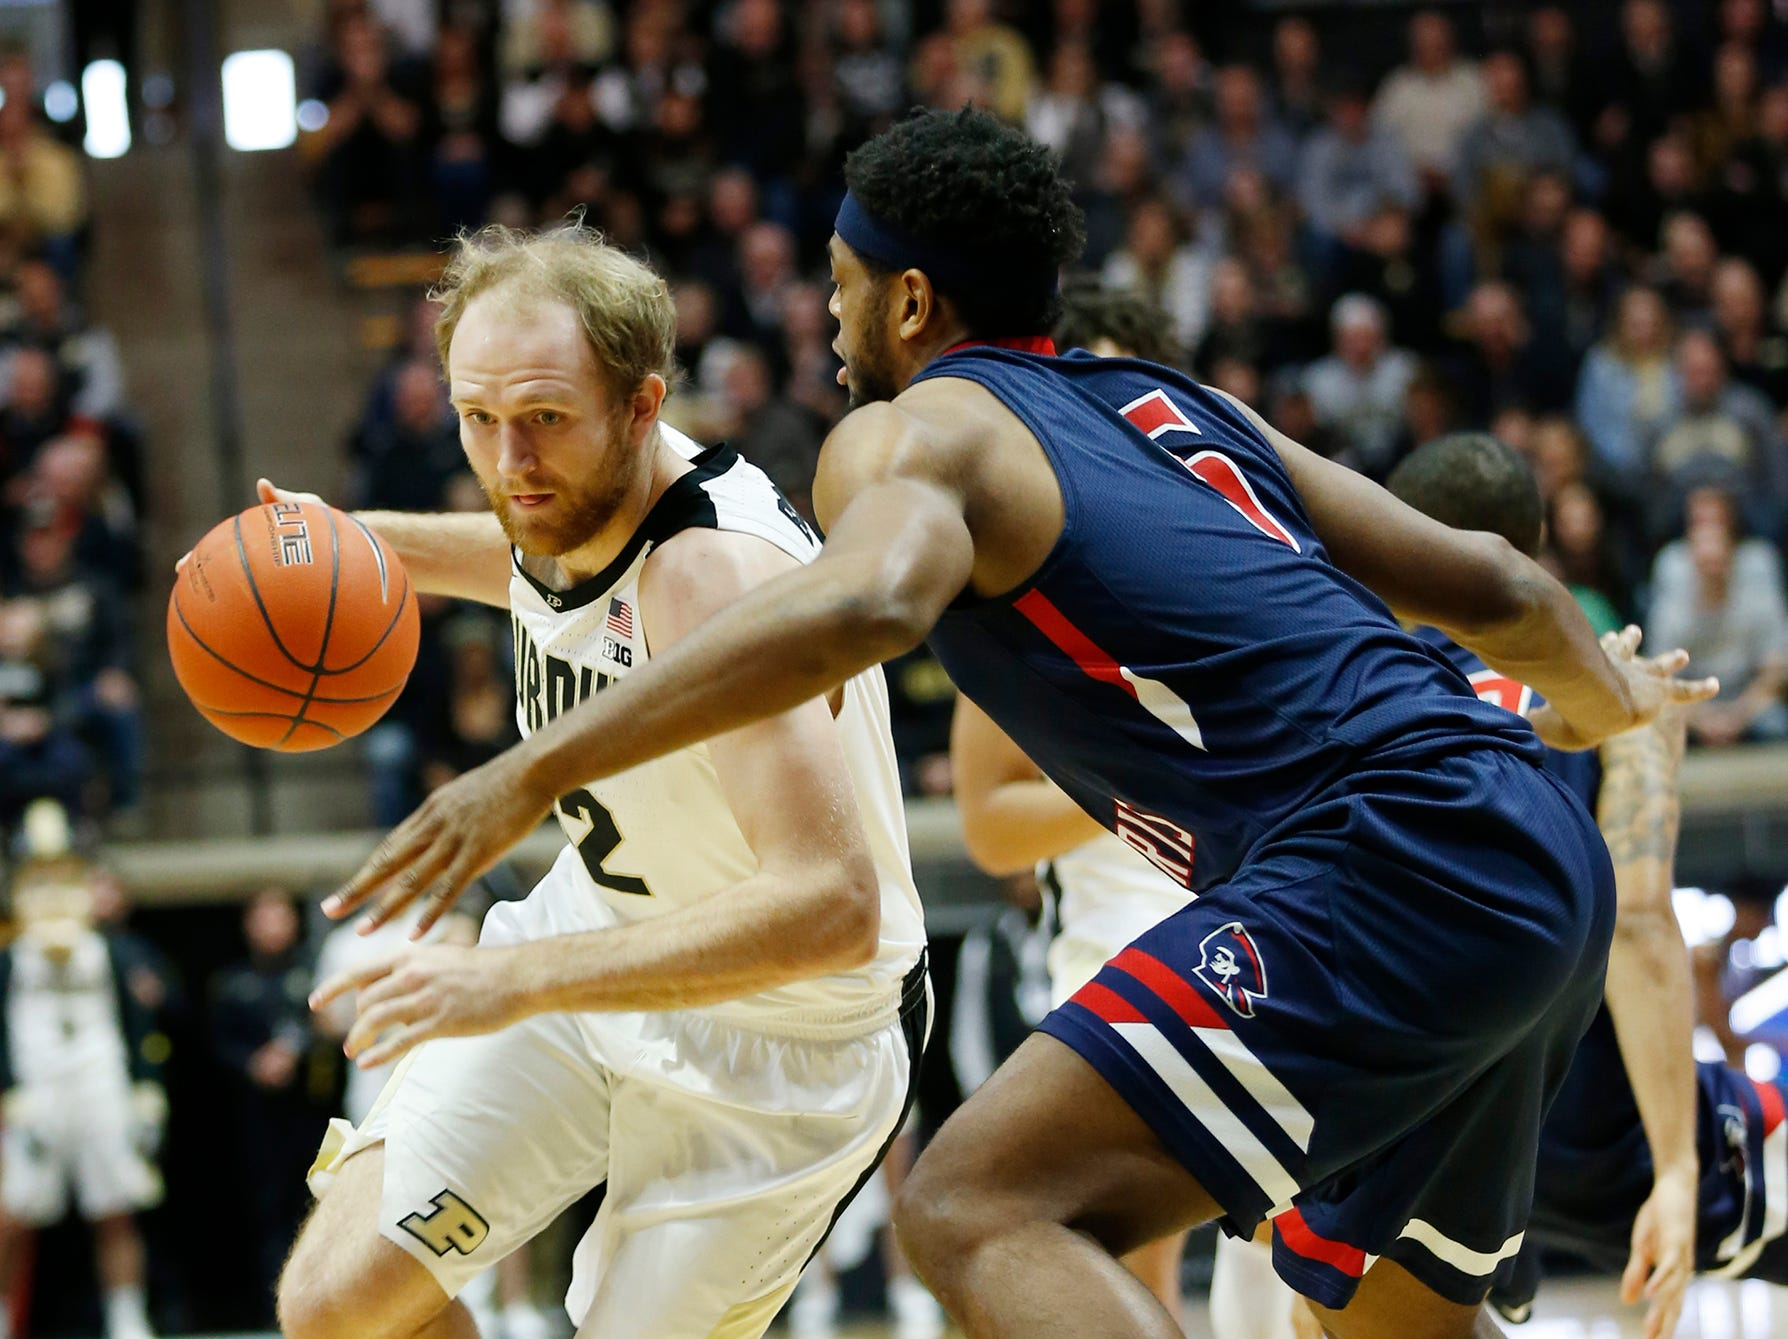 Evan Boudreaux of Purdue with a drive against Malik Petteway of Robert Morris Friday, November 23, 2018, at Mackey Arena. Purdue defeated Robert Morris 84-46.